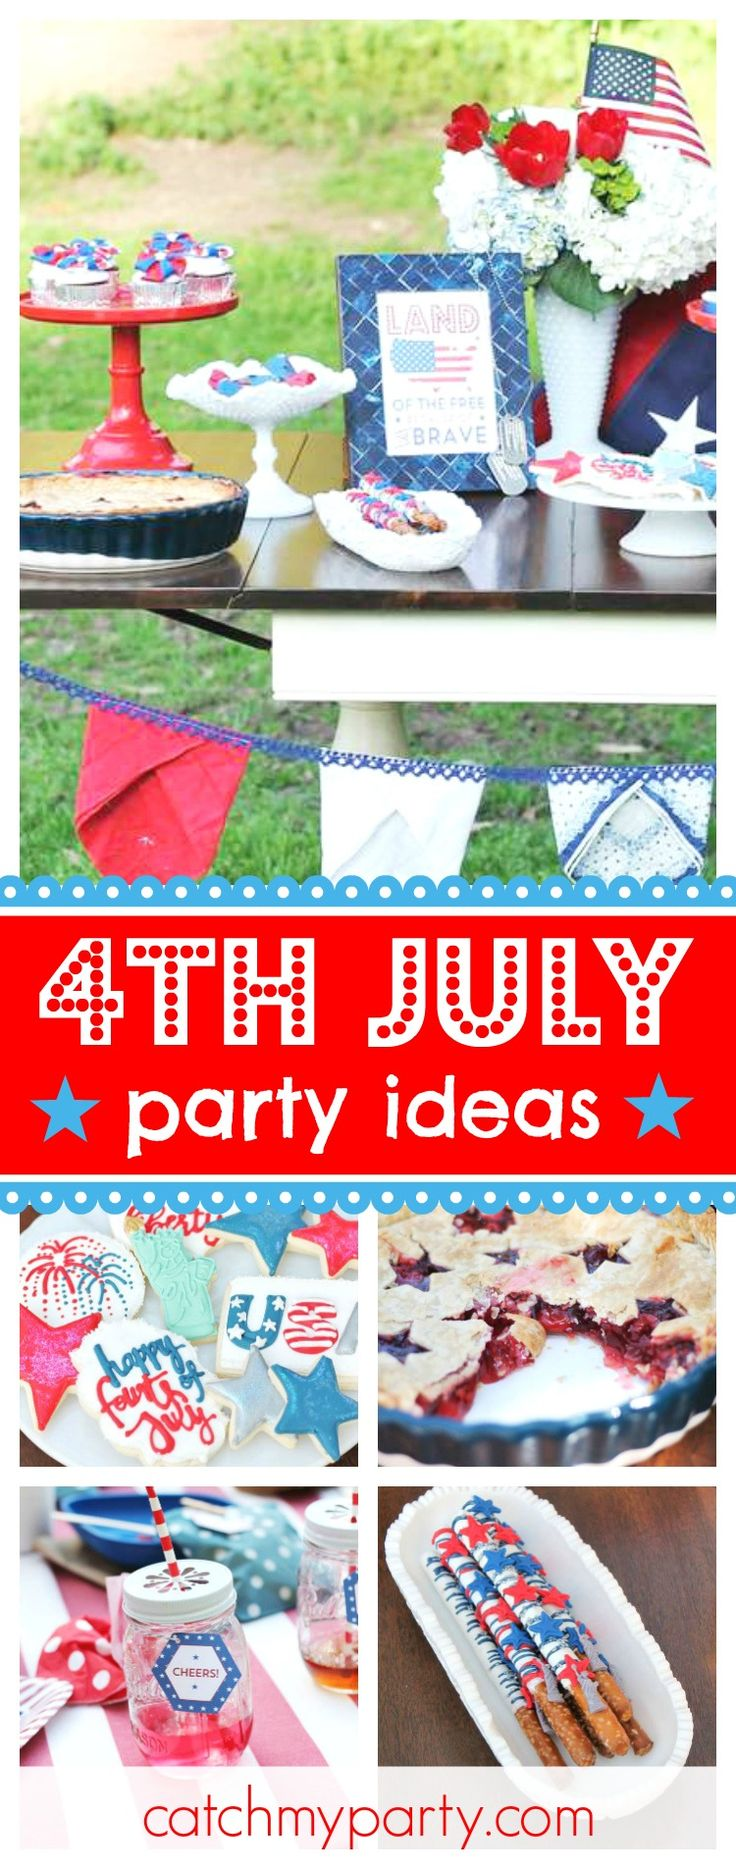 637 best party inspiration images on pinterest adult for 4th of july party ideas for adults